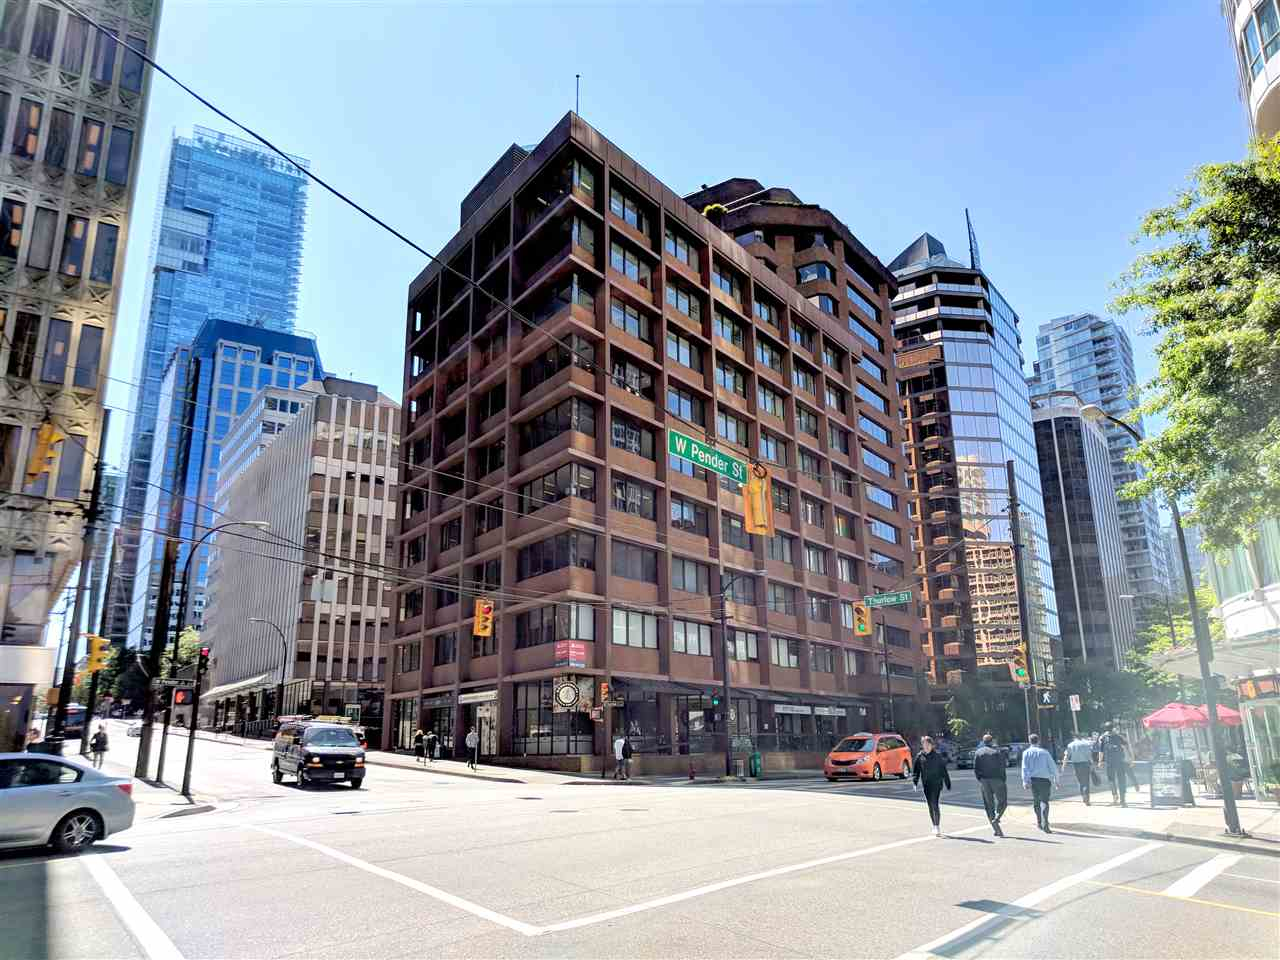 Klein Group presents the ideal short term office sub-lease opportunity in the midst of the downtown  business district. This north facing unit offers 884 SF on the 6th floor and provides t offices, reception space, private space, and elevator exposure. 1112 W Pender is a 9 storey office building on the corner of Thurlow and W Pender with a newly renovated lobby and common area, 24 hr access and security, located a few minutes away from Burrard Skytrain Station. Other tenants include PainPro Therapeutics, Fusion Communications, DNV Canada, Reel-One Pictures and International Ship- Owners Alliance. The current lease term expires May 8th 2019 and provides a 3 yr option to renew subject to the landlord's approval.